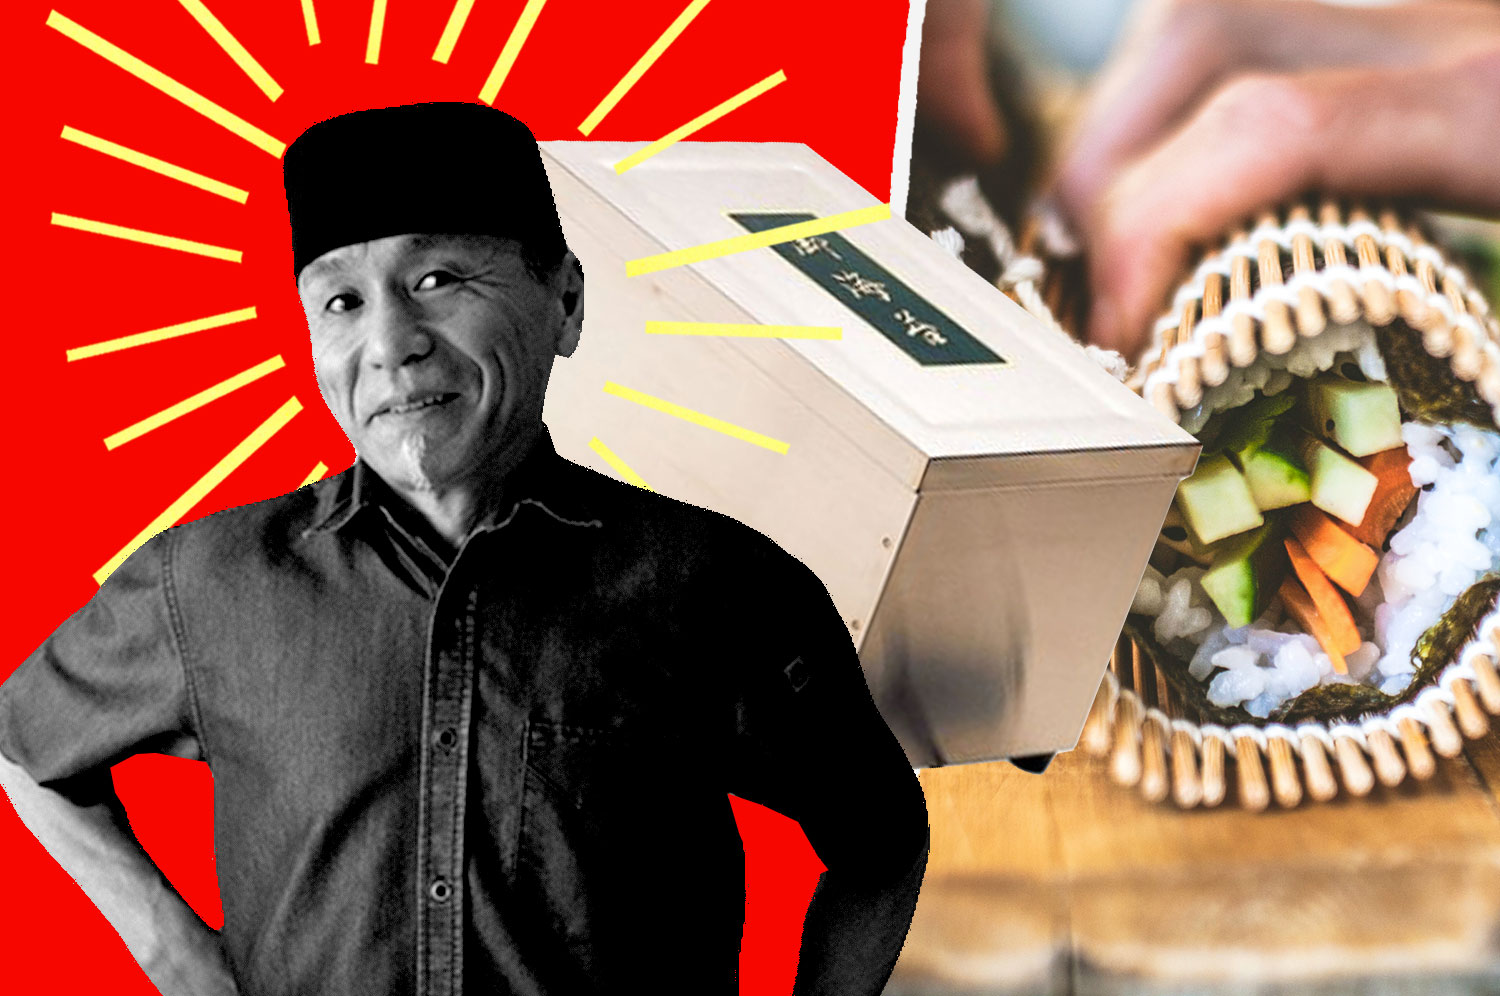 A portrait of chef Kiminobu Saito in a collage with a Korin electric seaweed warmer and a sushi hand roll